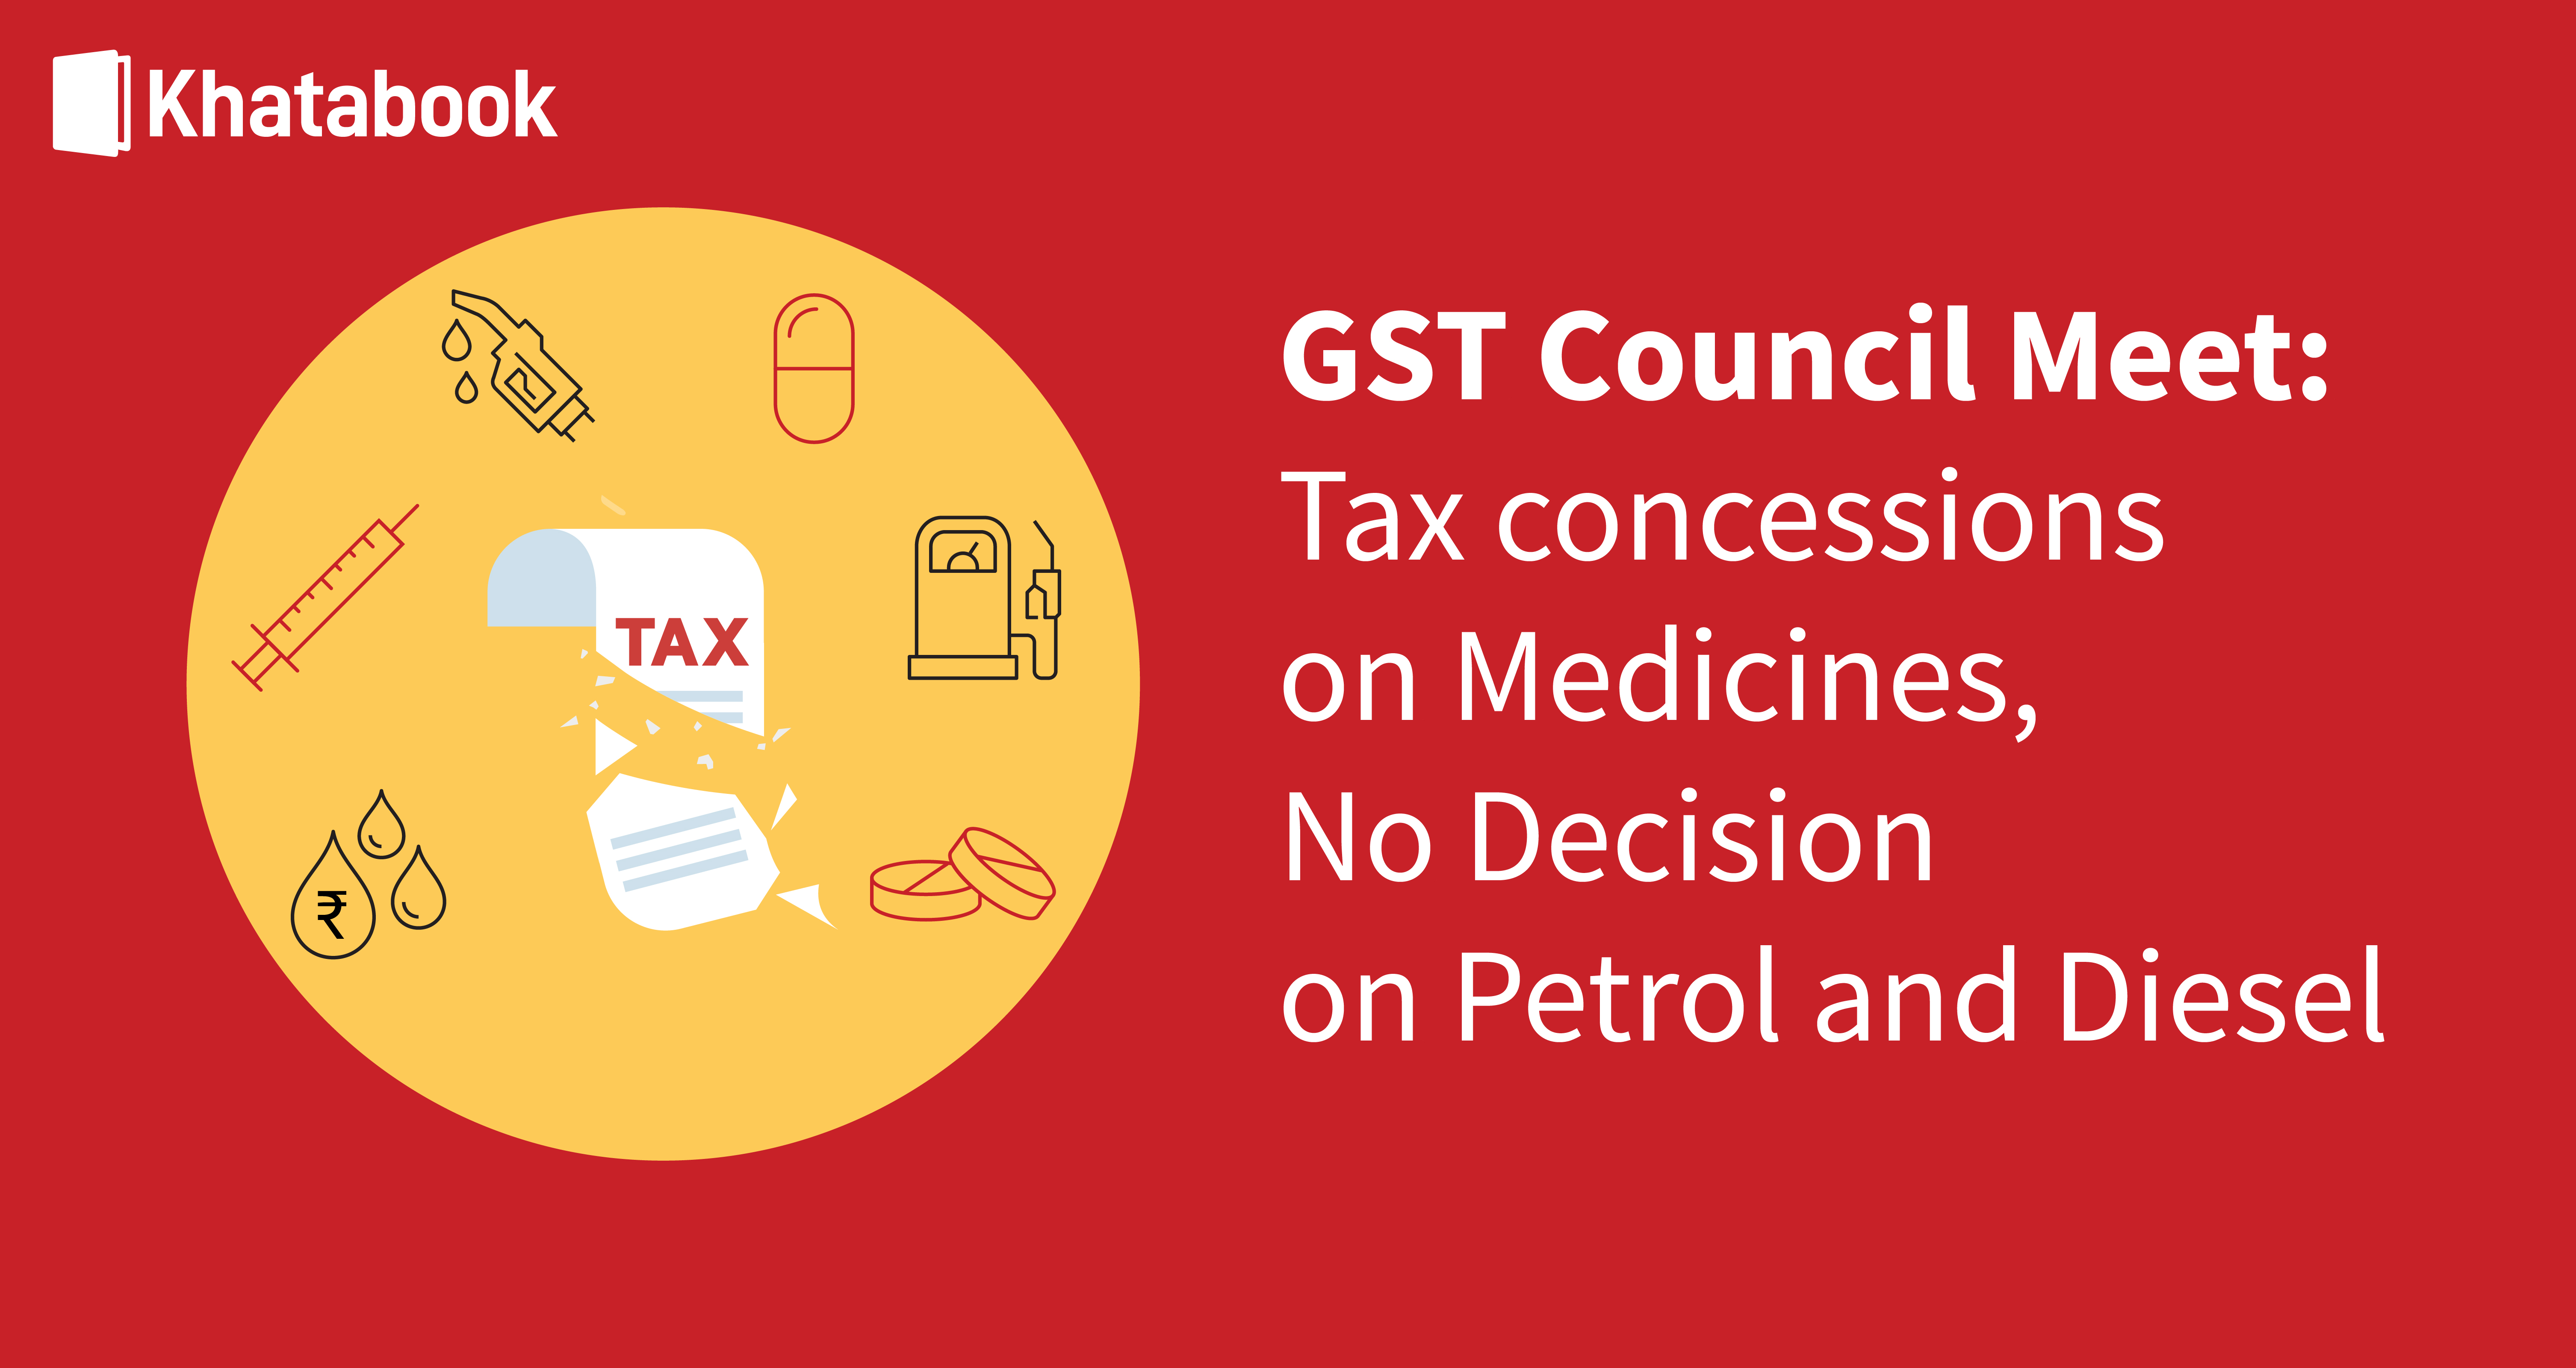 GST Council Meet: Tax concessions on Medicines, No Decision on Petrol and Diesel